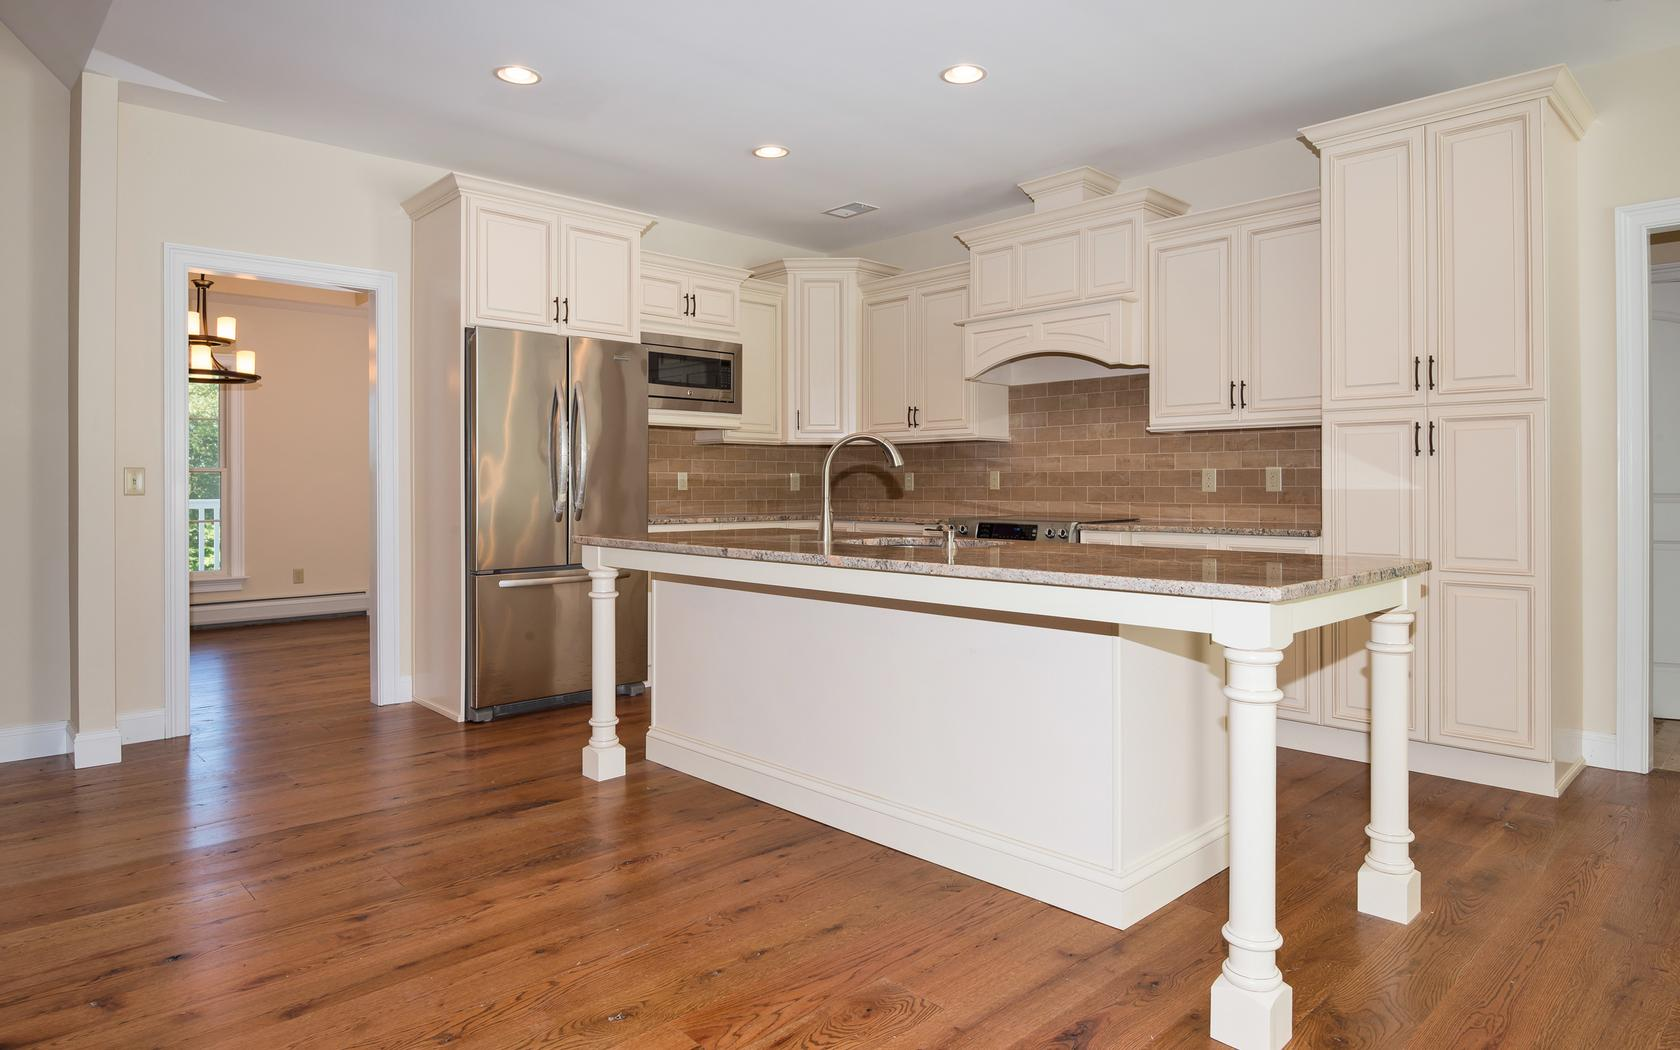 Kitchen cabinets long valley nj - Custom Cabinetry